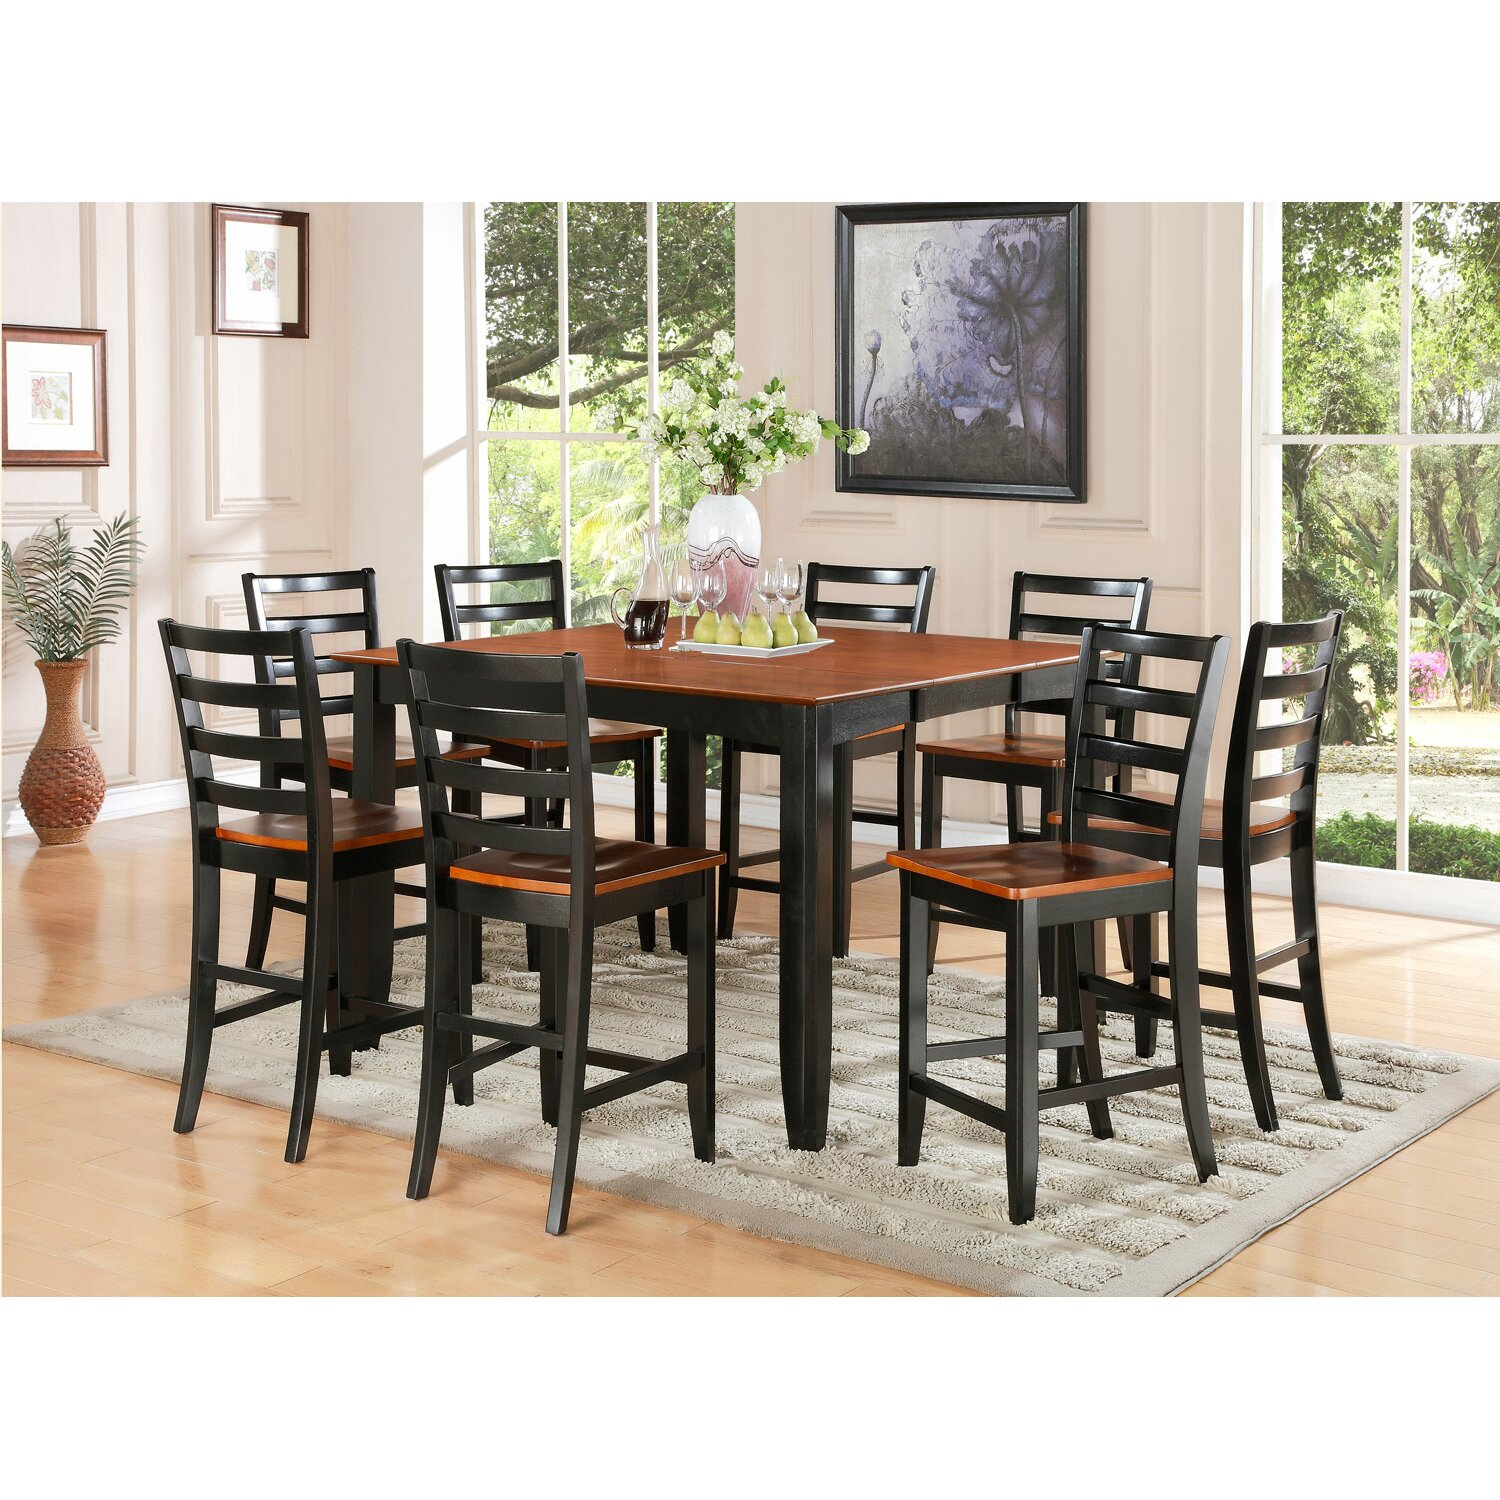 Black counter height dining room sets - Black Counter Height Dining Room Sets 51